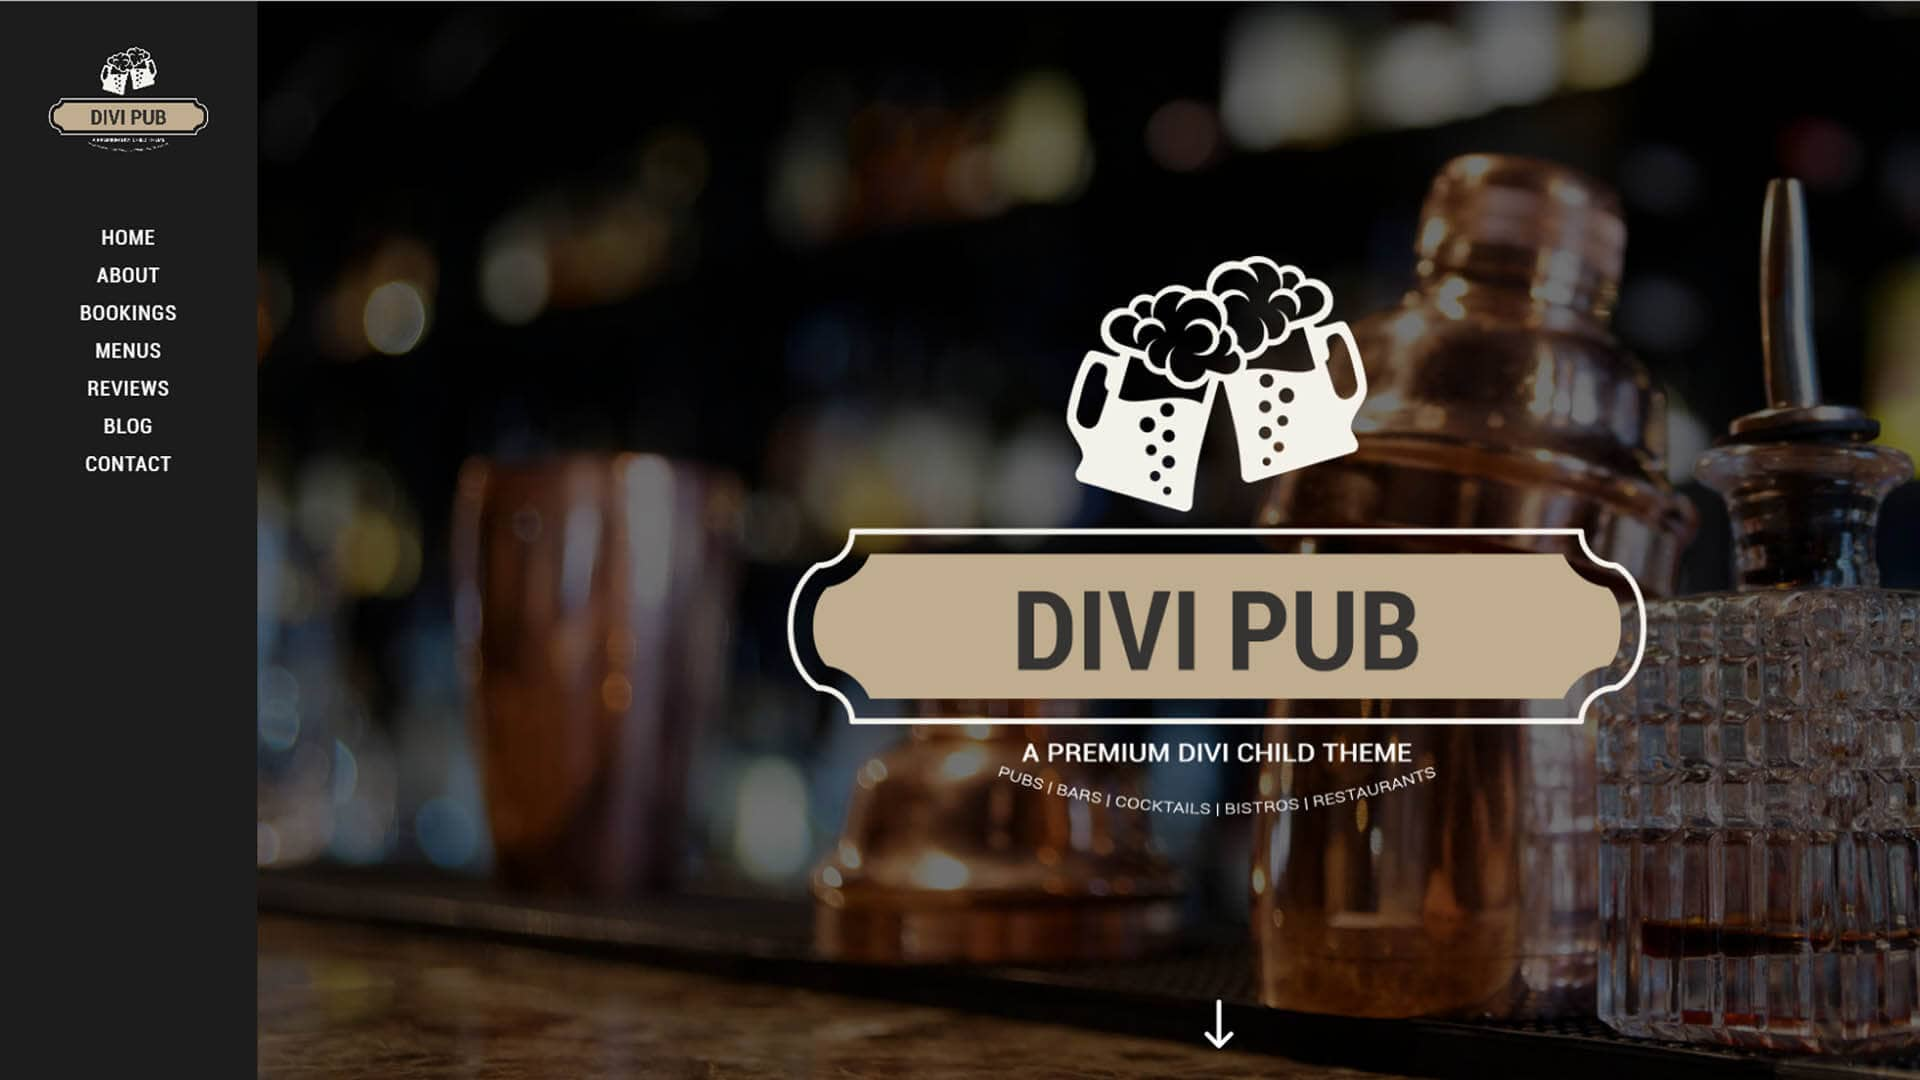 The home page of Divi Pub